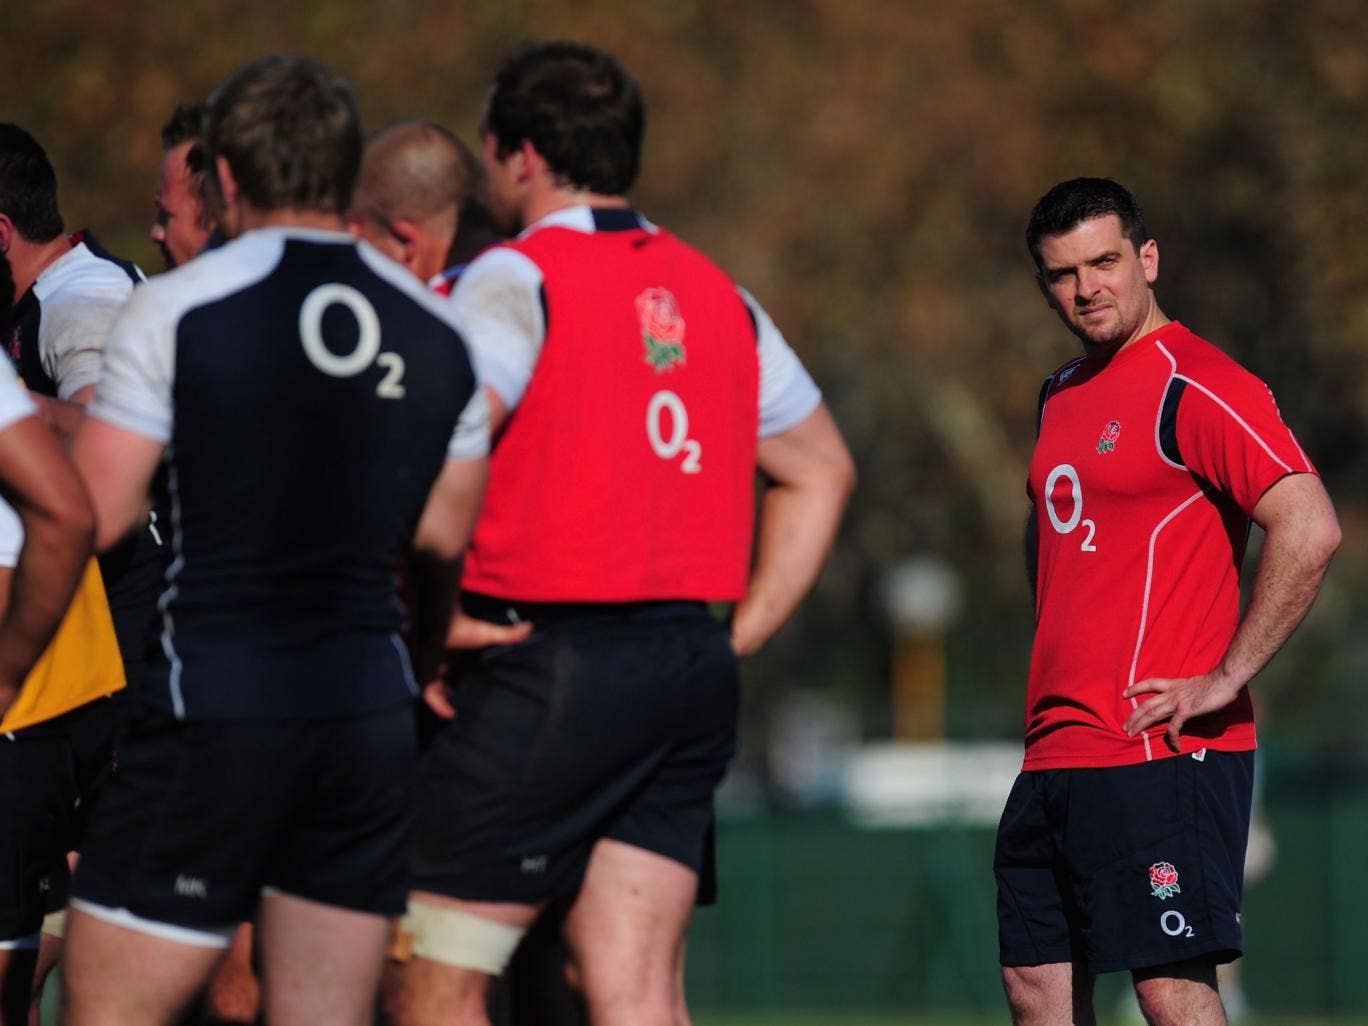 Matt Parker, far right, heads a 16-man team charged with preparing England for the World Cup next year